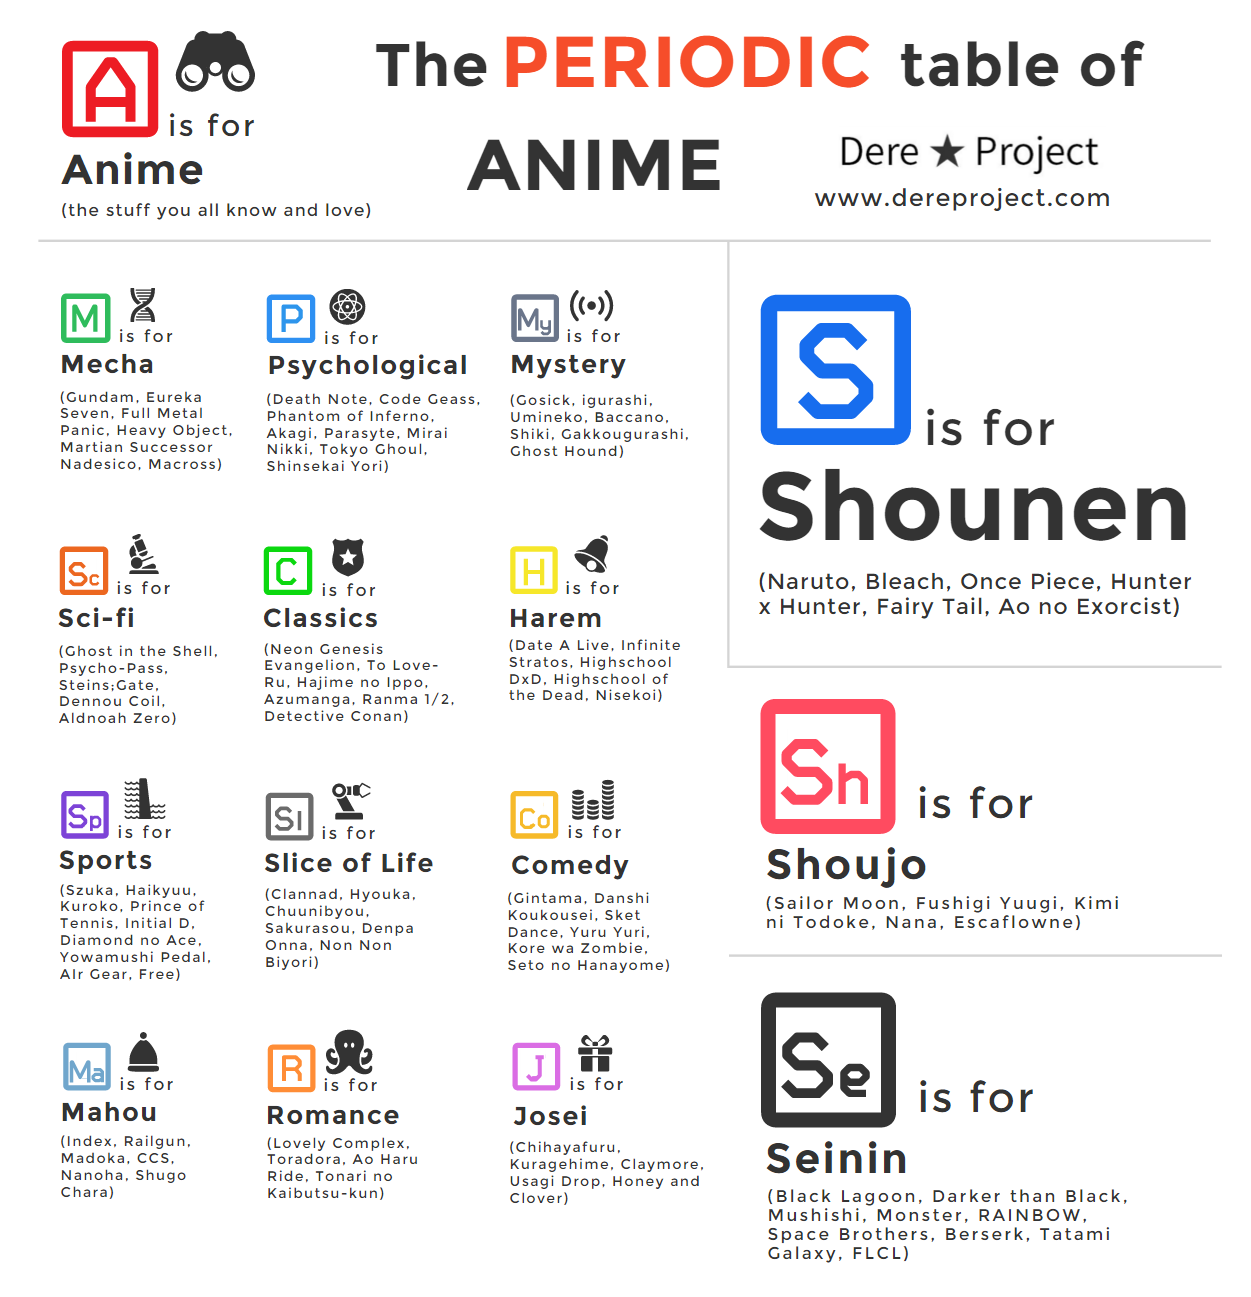 The periodic table of anime by dere project general anime the periodic table of anime by dere project gamestrikefo Image collections